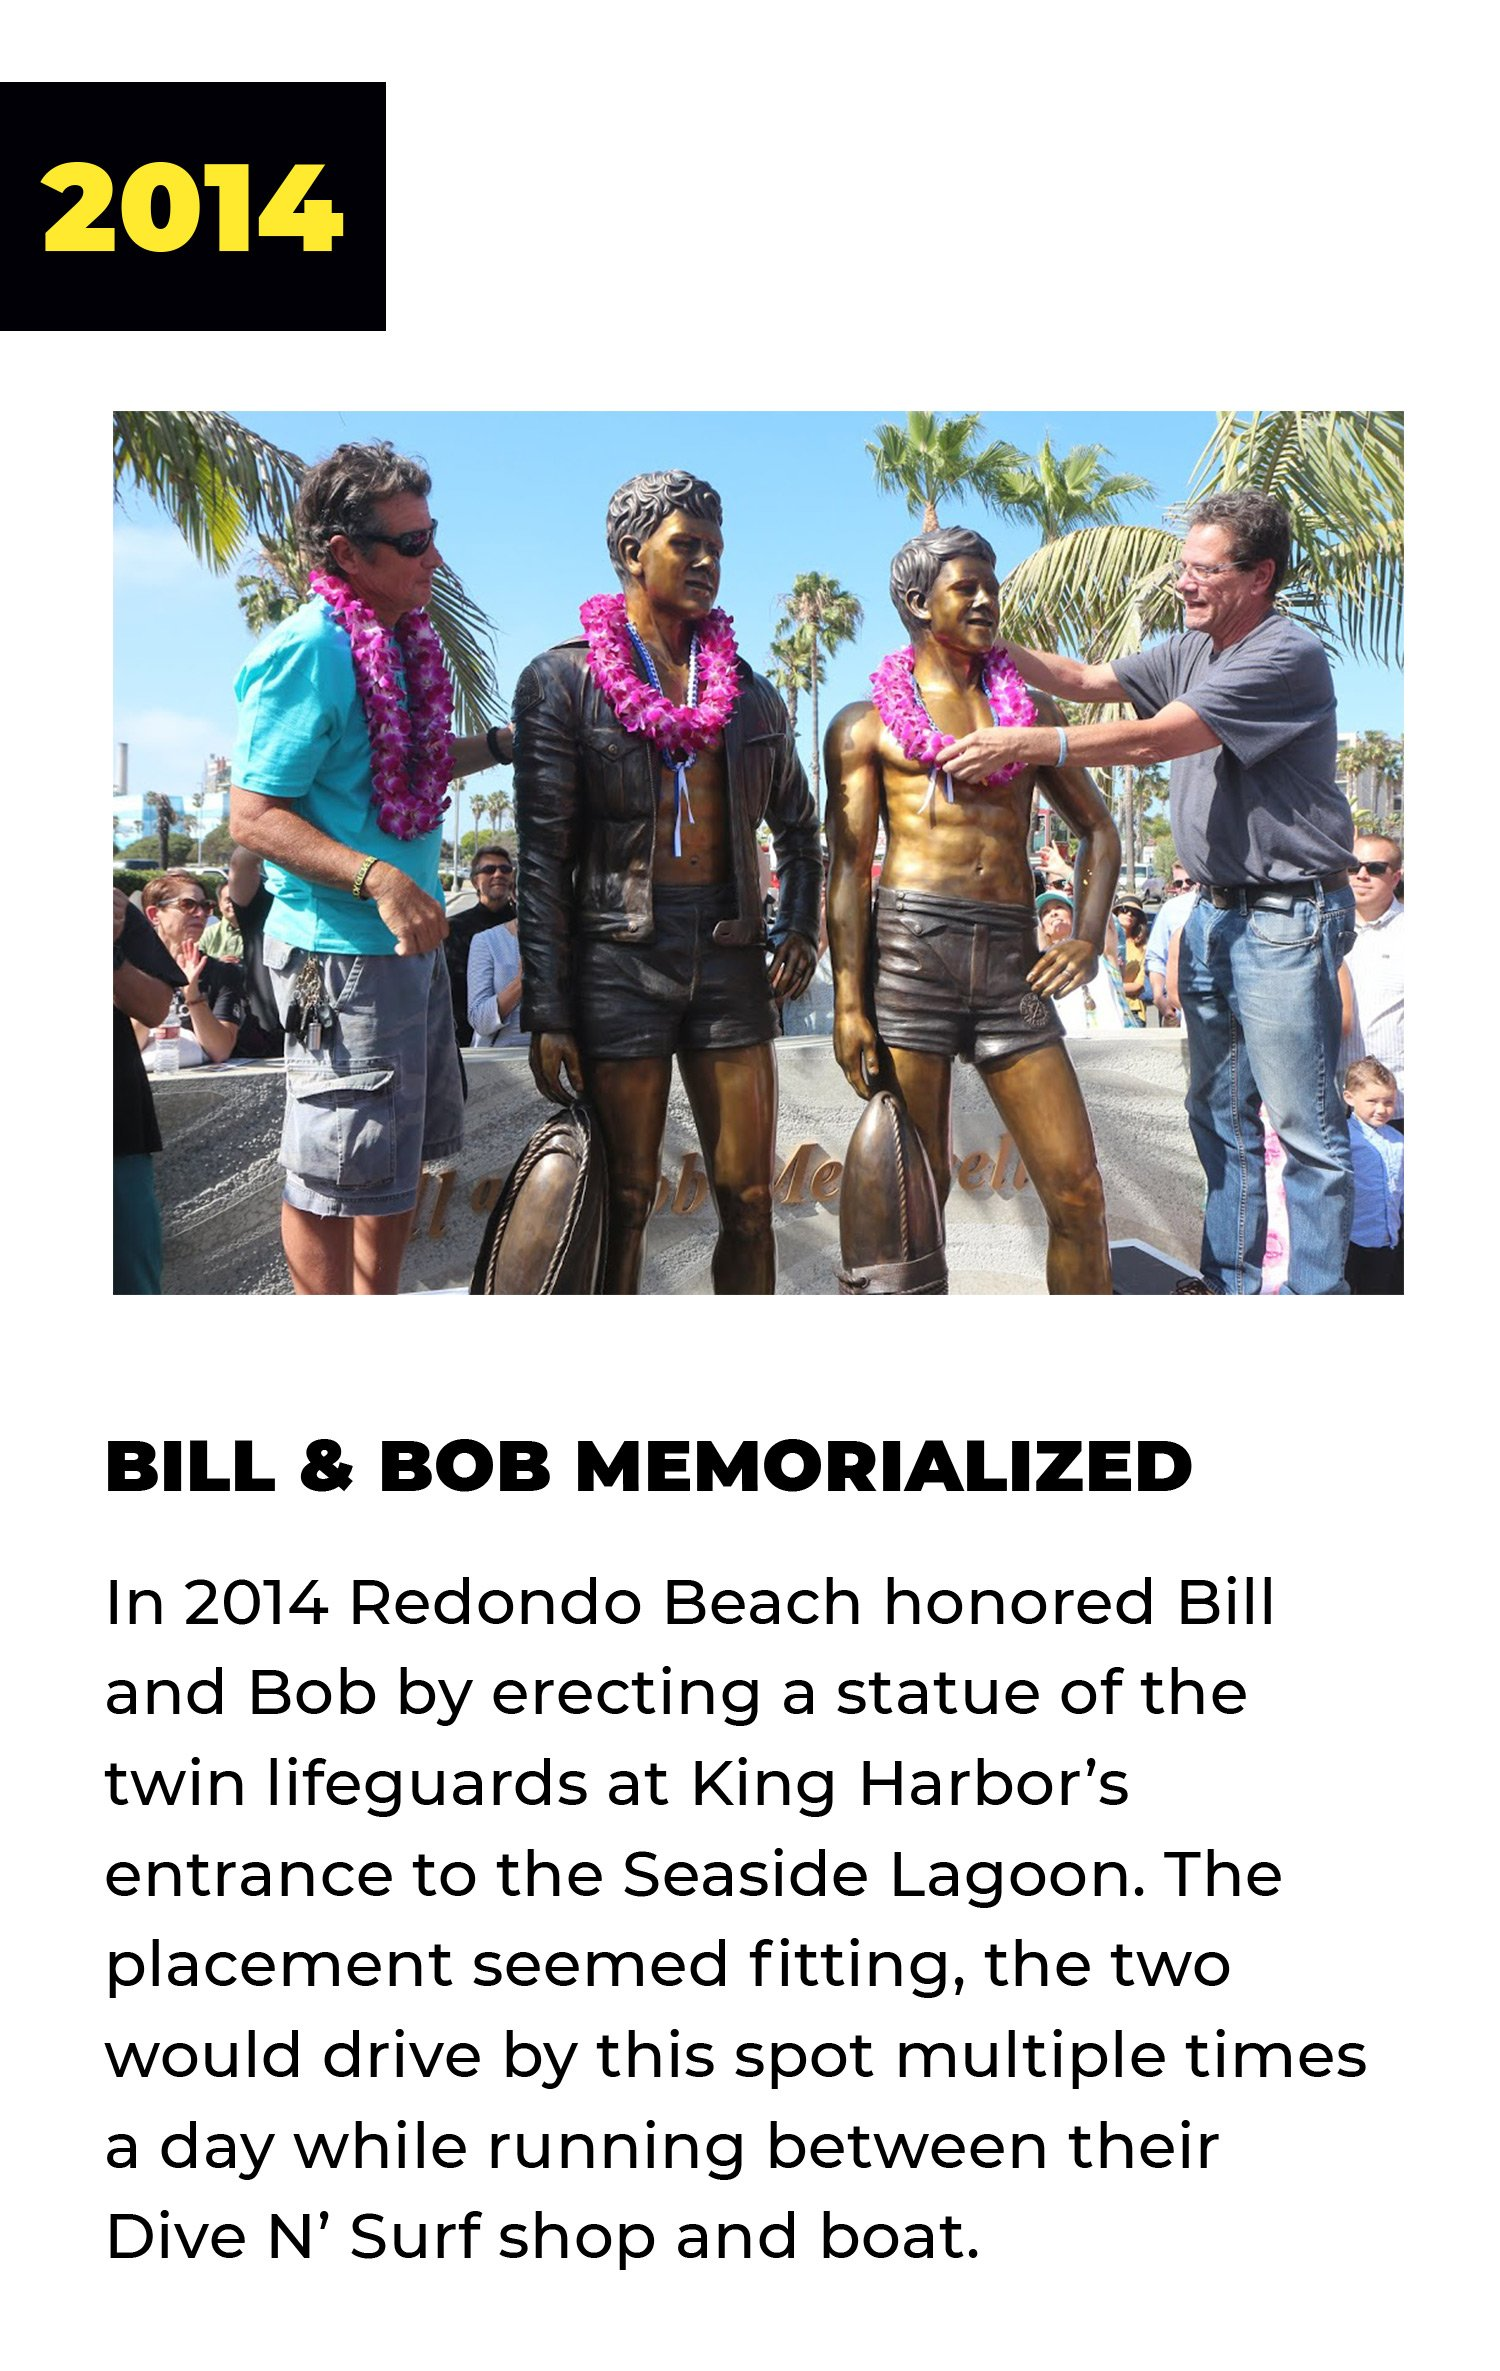 2014 | Bill and Bob Memorialized | In 2014 Redondo Beach honored Bill and Bob by erecting a statue of the twin lifeguards at King Harbor's entrance to the Seaside Lagoon. The placement seemed fitting: The two would drive by this spot multiple times a day while running between their Dive N' Surf shop and boat.